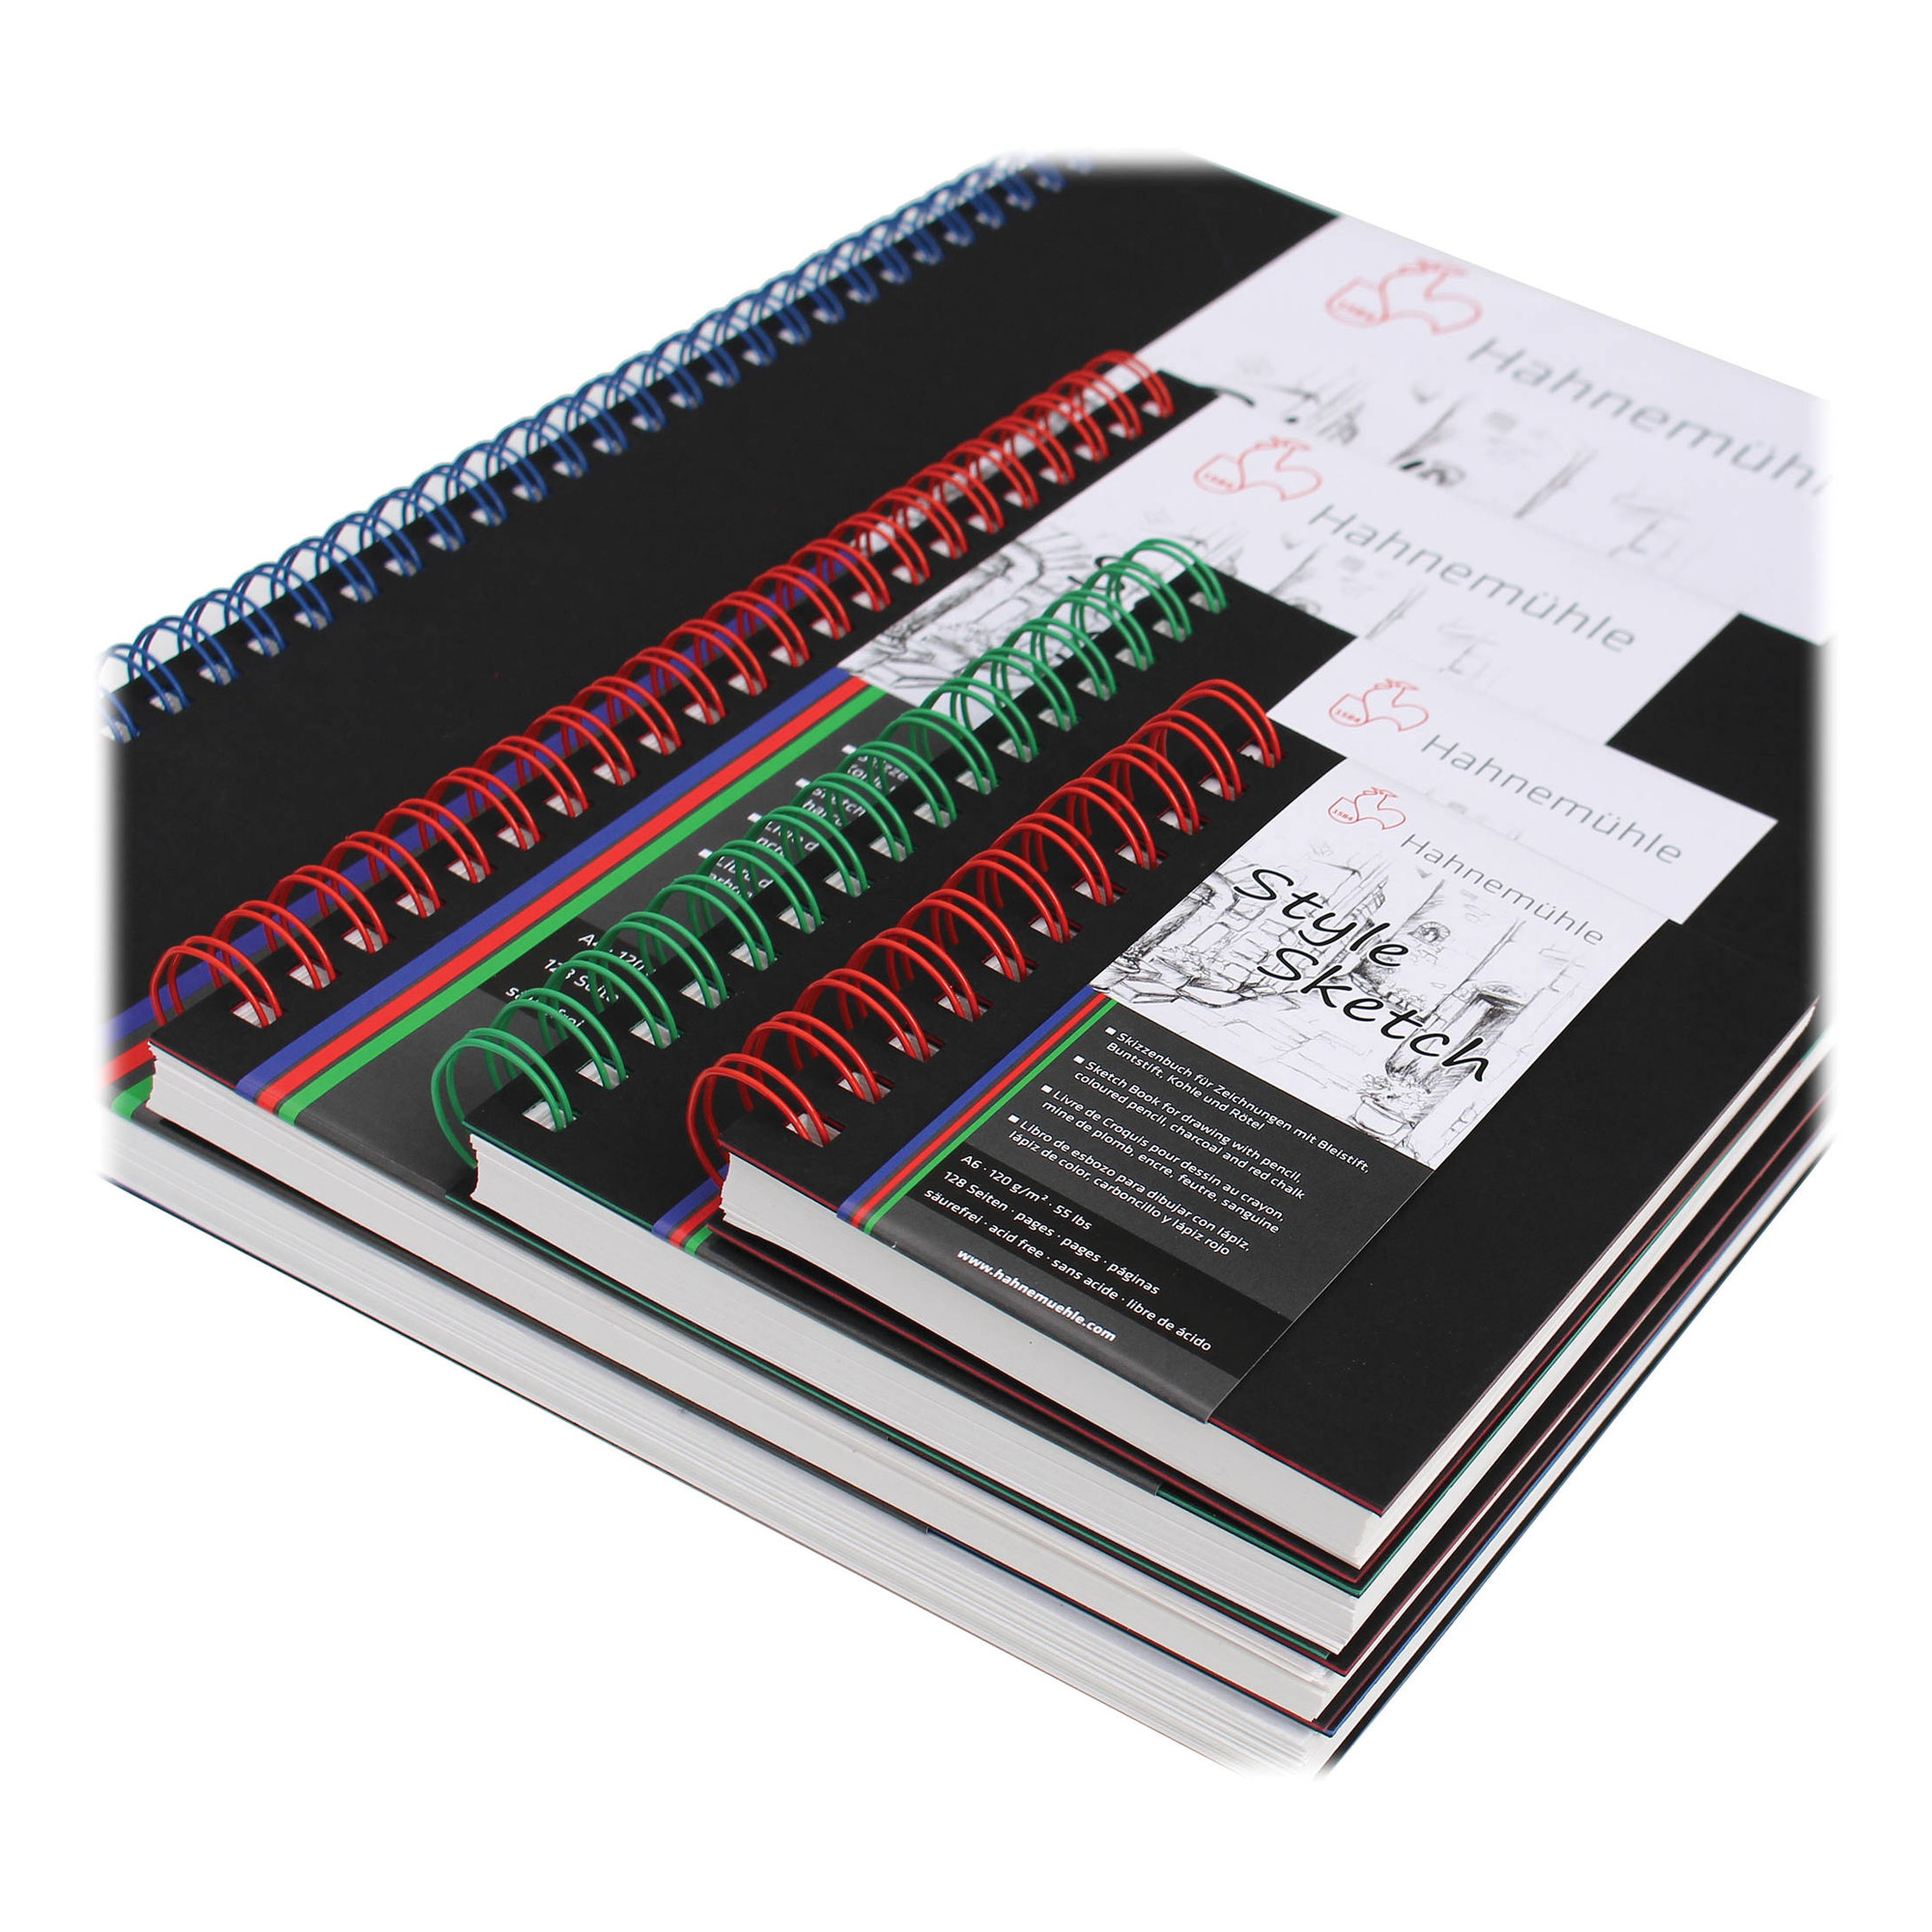 Image of Hahnemuhle A5 Size Style Sketch Book (64 Sheets Blue Spiral)